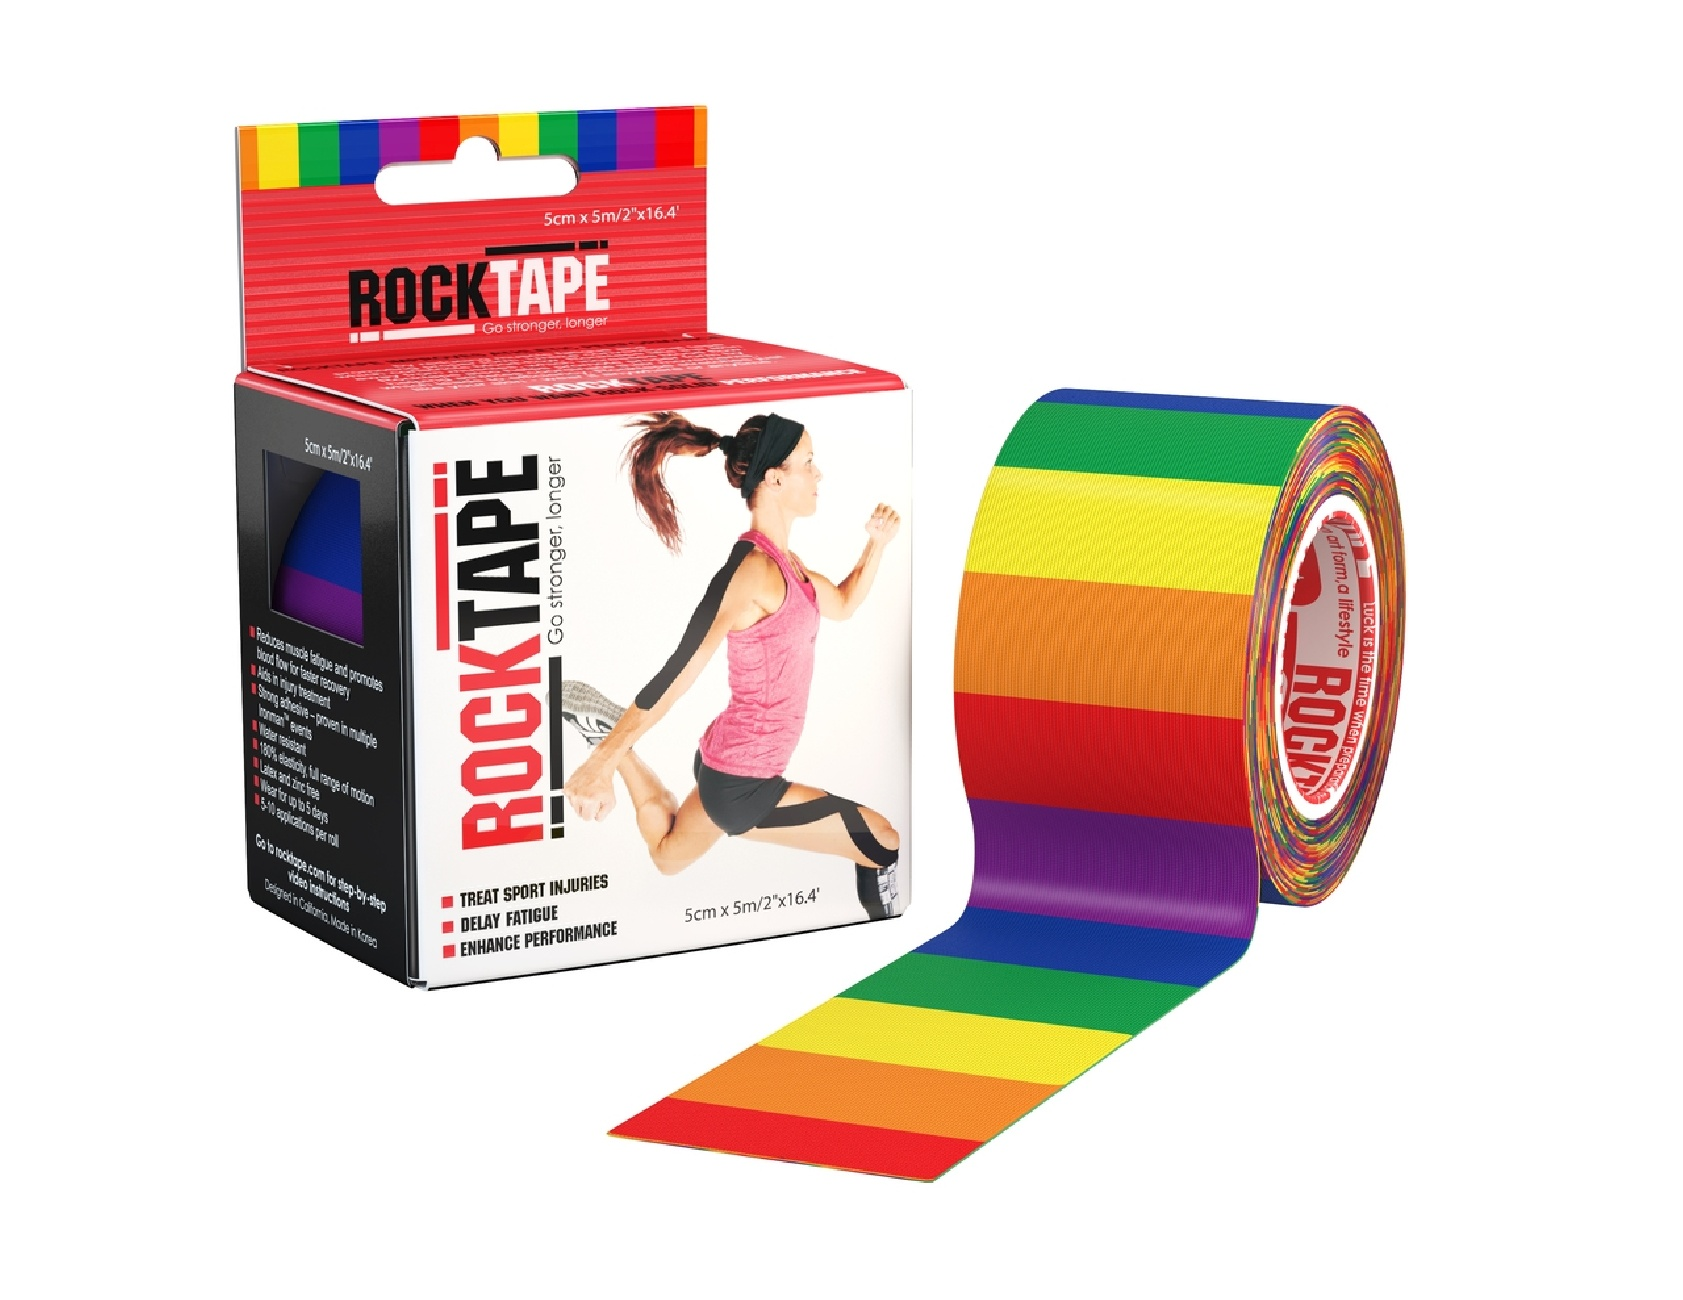 "RockTape 2"" Wide Single Roll And Cardboard Dispenser Box Rainbow Base Image"